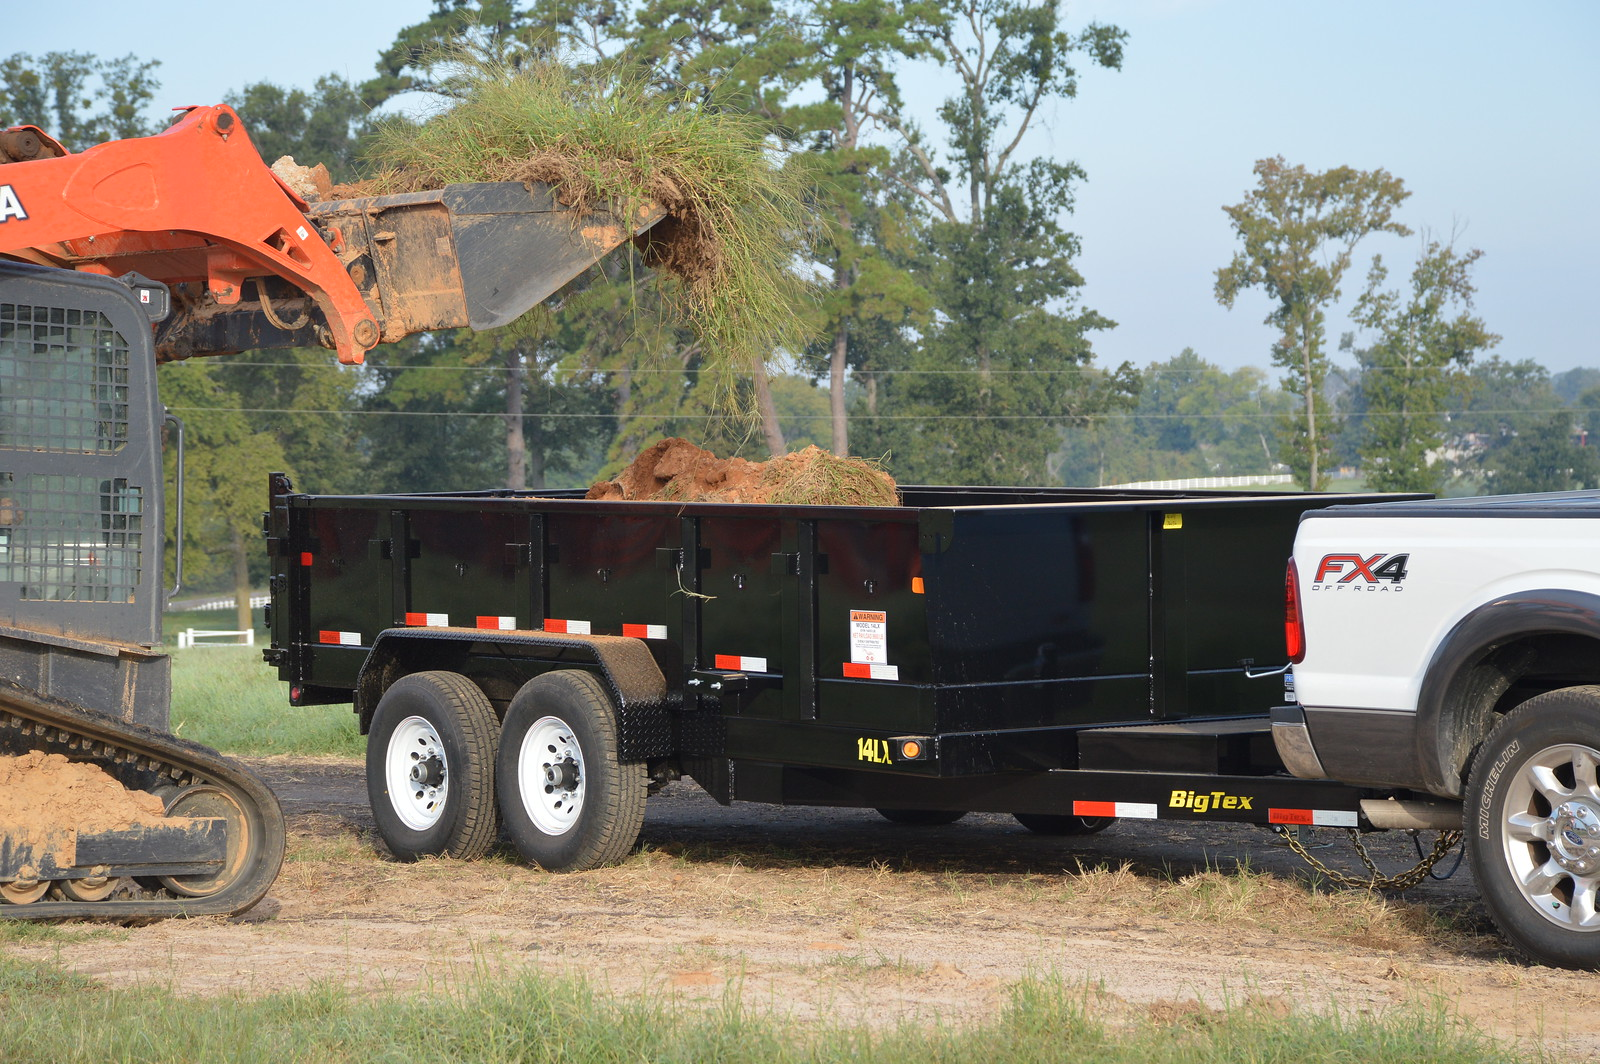 Big Tex 14LX Trailer